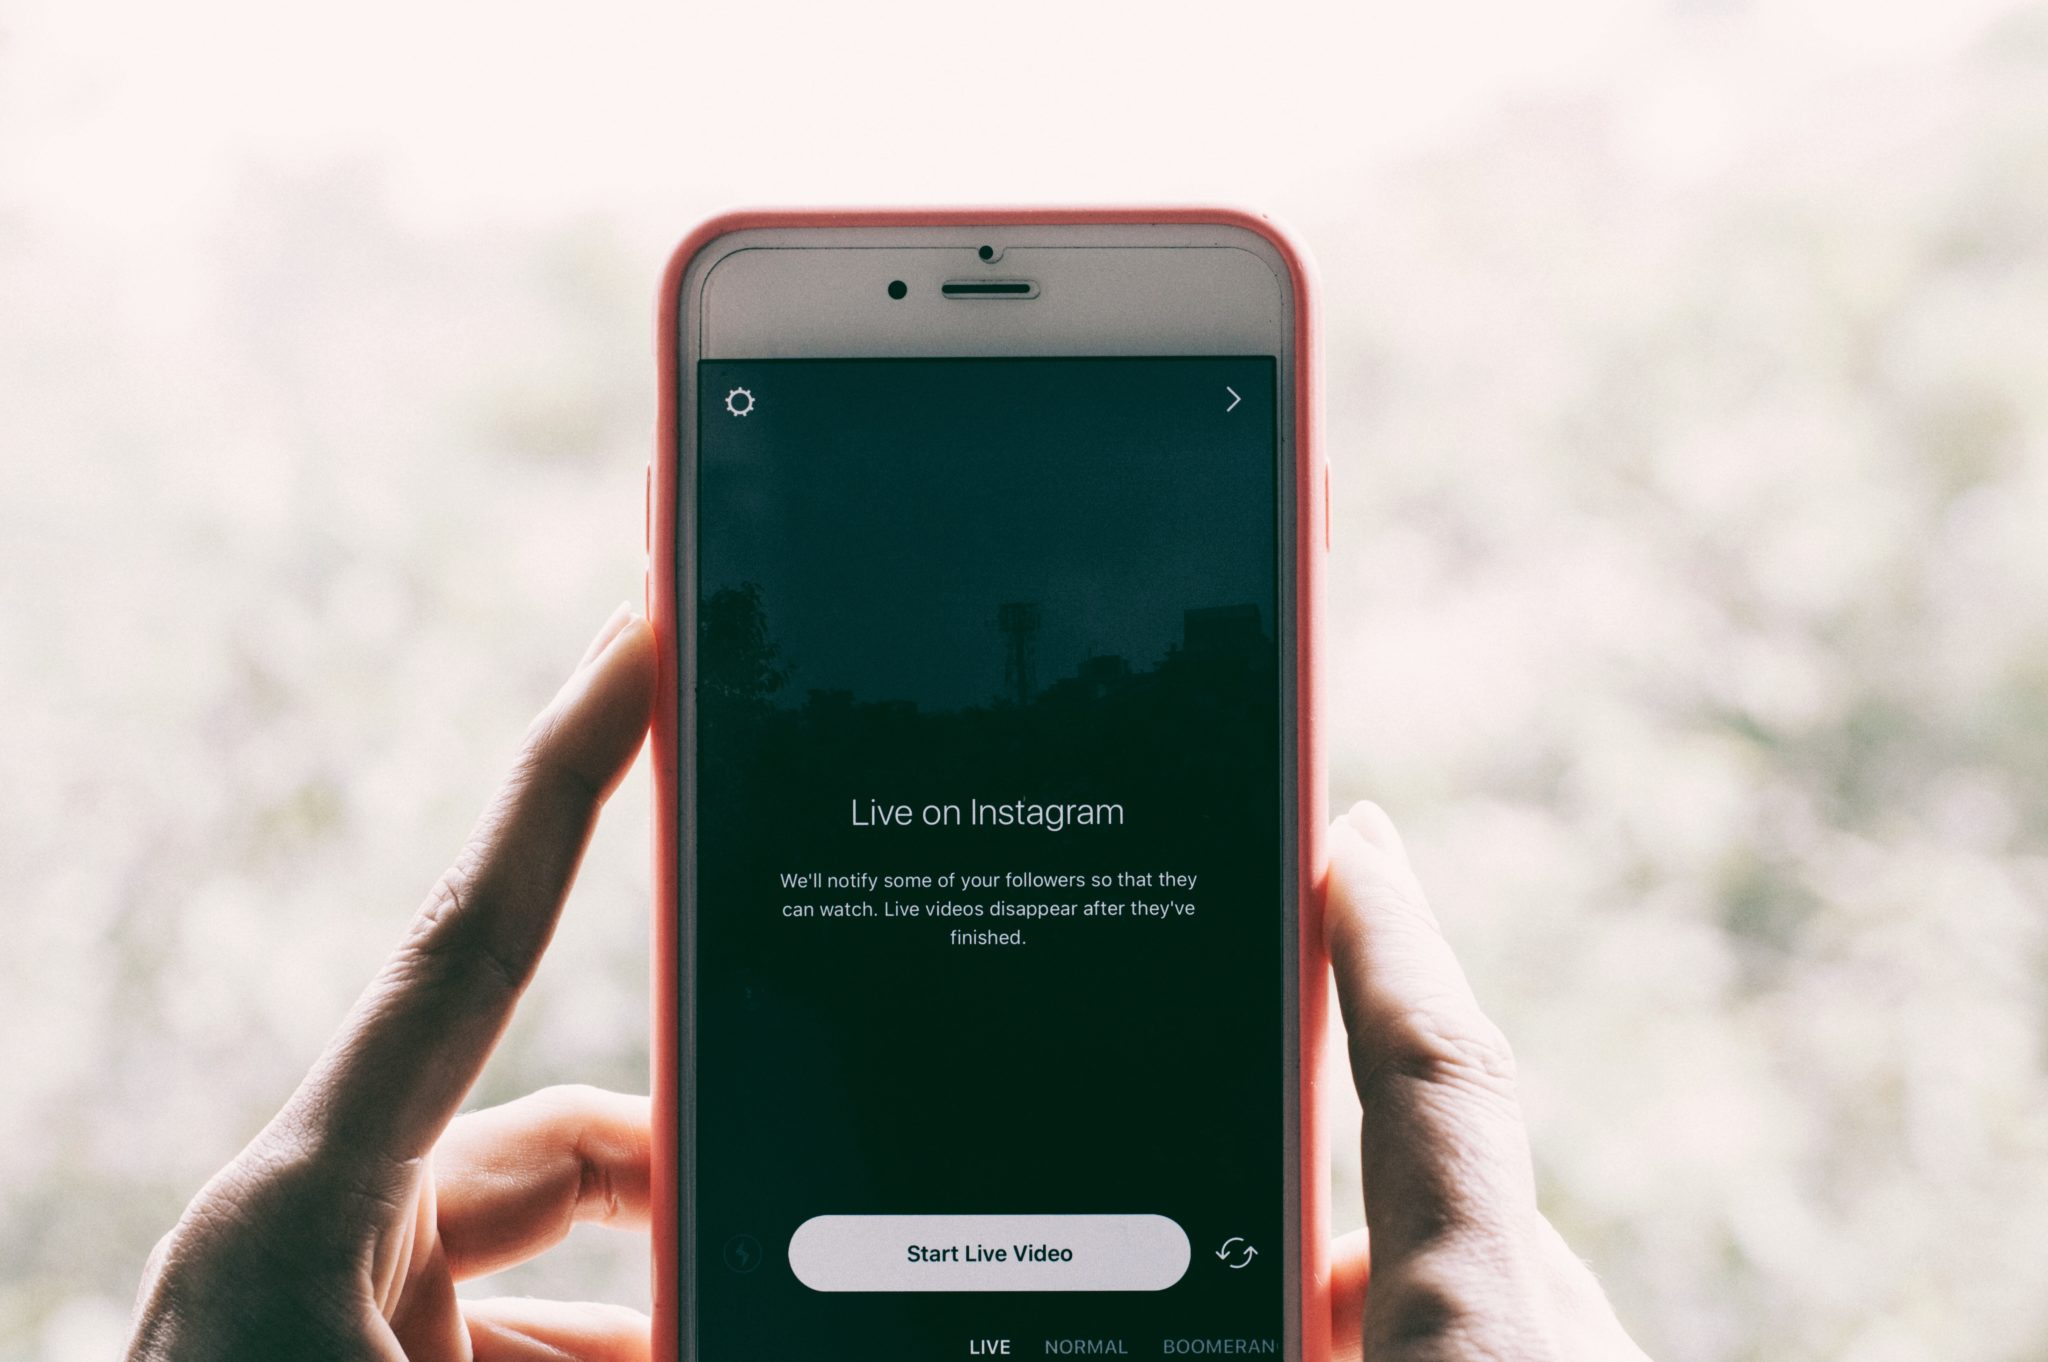 Content Marketing Consumption Trends under Millennials - What trends should a hospitality brand know regarding content consumption? Applicable for hotels, hostels, restaurants, cafés and more. One of them: live streams (livestreaming).